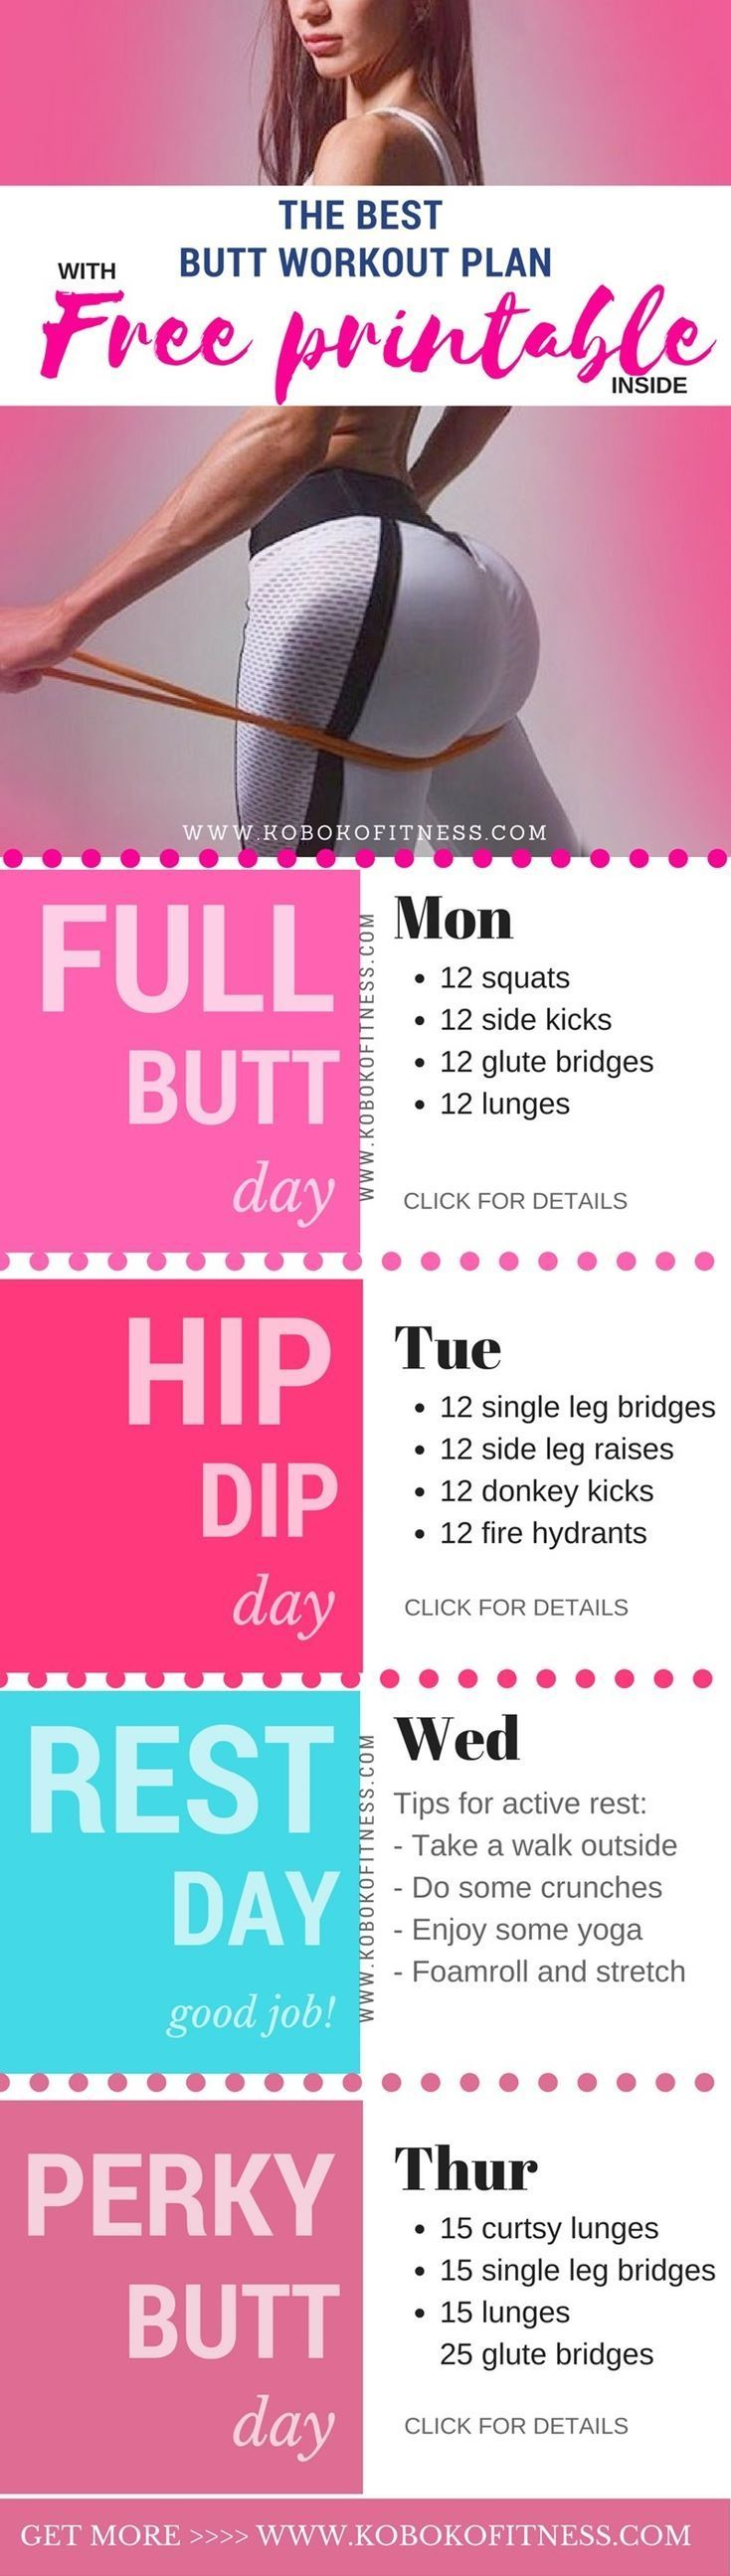 The perfect butt workout plan with free printable for your fridge. You can easily get a perky butt, fix your hip dips, and get the booty your dreams